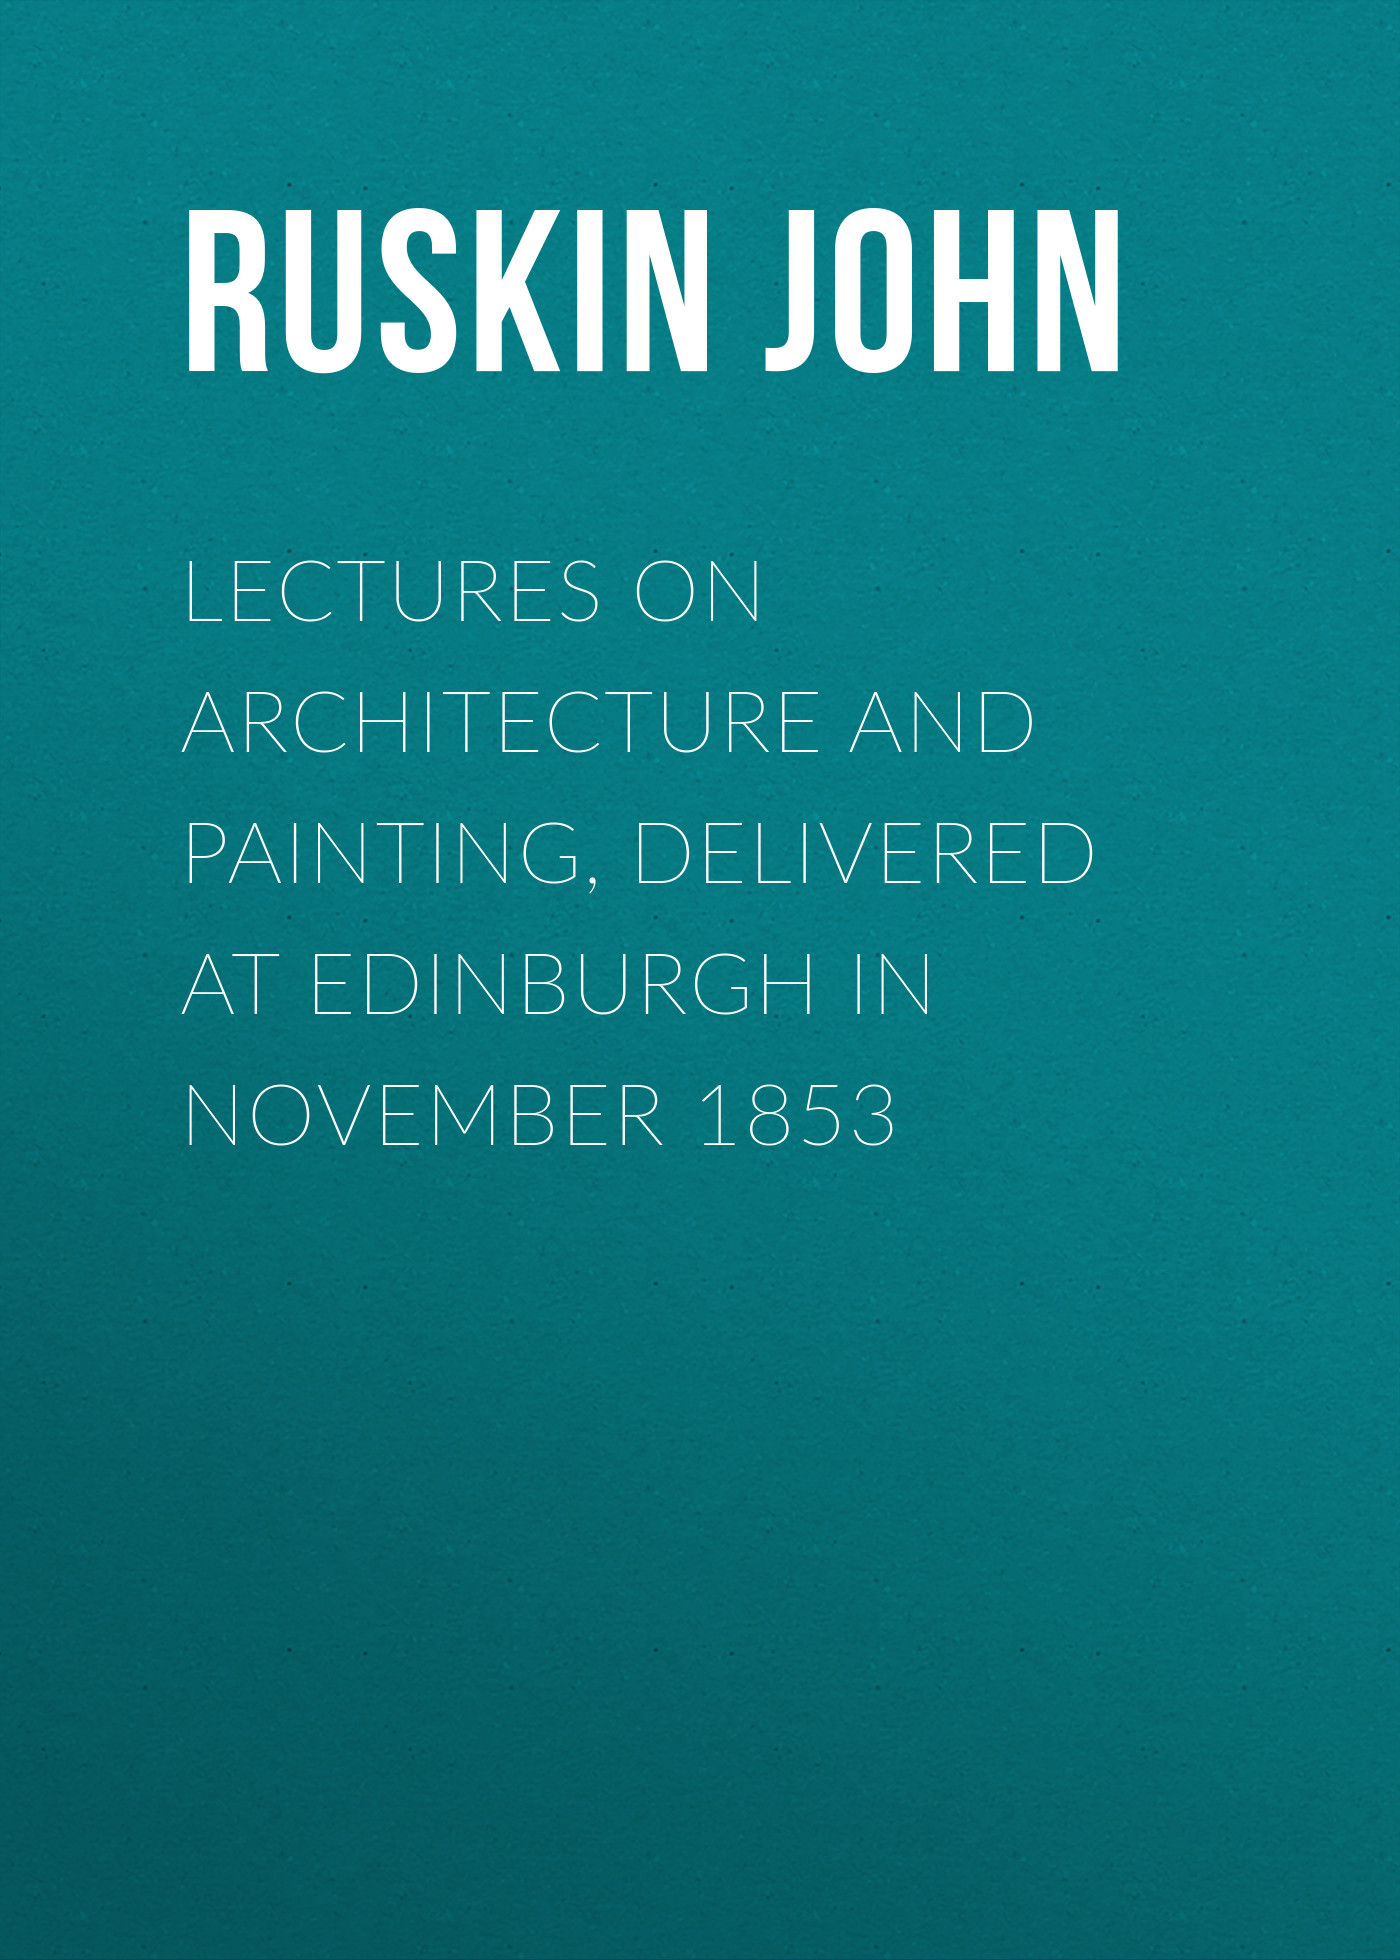 Ruskin John Lectures on Architecture and Painting, Delivered at Edinburgh in November 1853 john stark picture of edinburgh